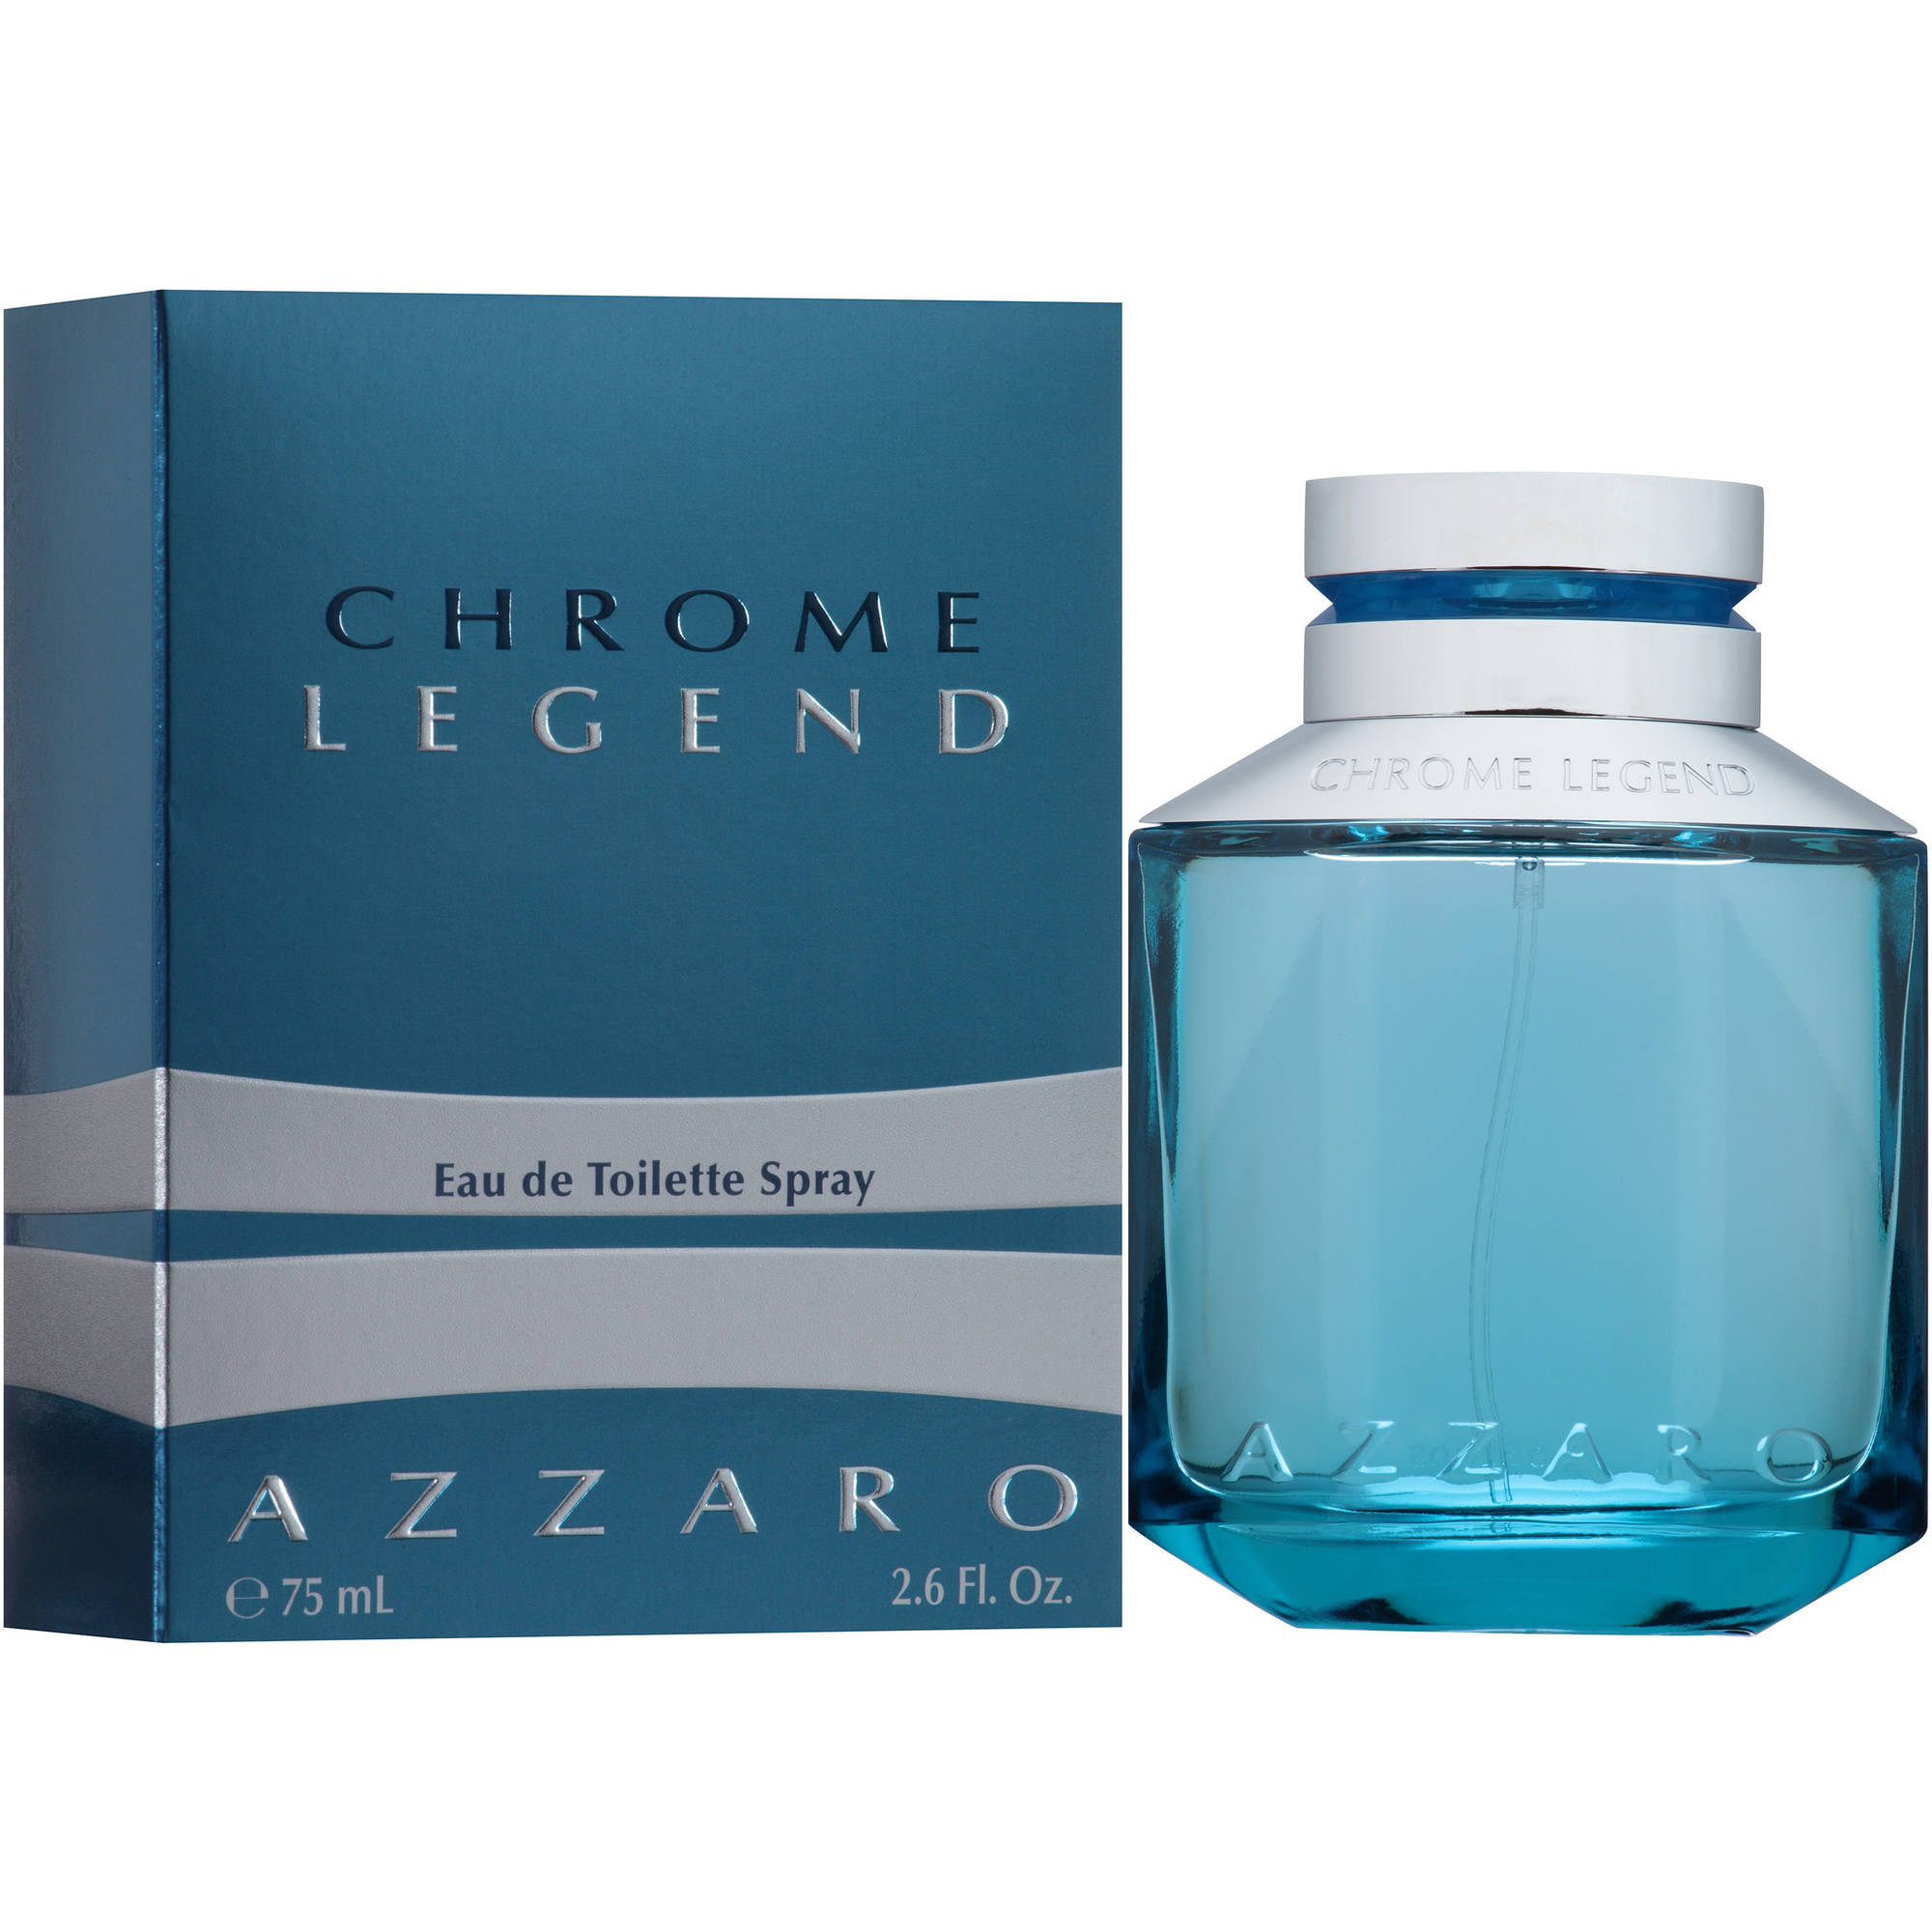 Azzaro Chrome Legend Men's Eau de Toilette Spray, 2.6 fl oz